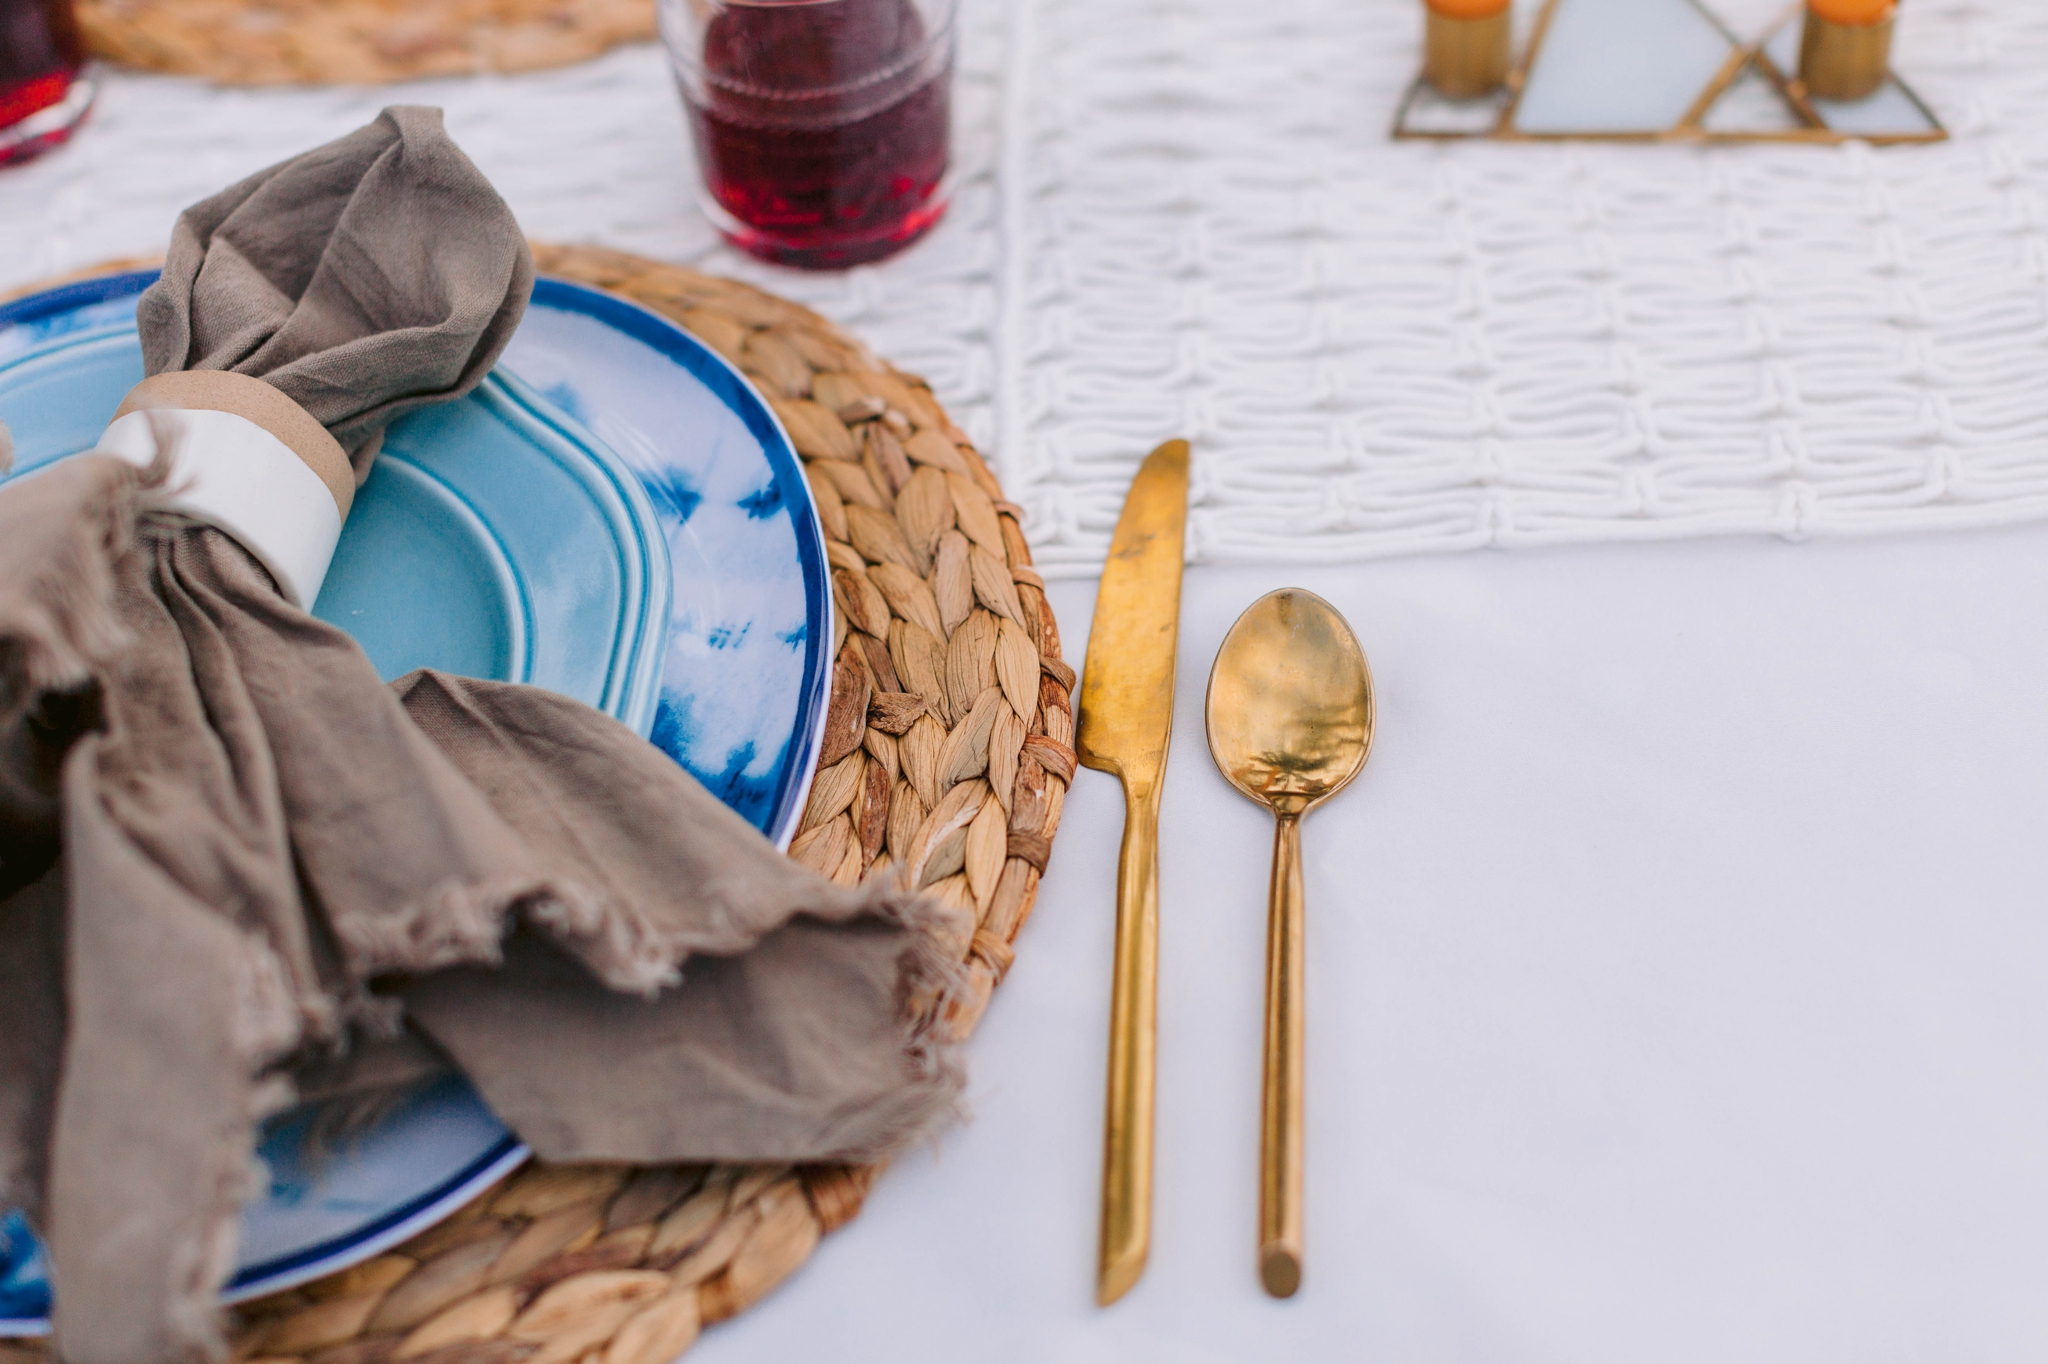 Reception table scape with blue plates and gold flatware - Ana + Elijah - Wedding at Loulu Palm in Haleiwa, HI - Oahu Hawaii Wedding Photographer